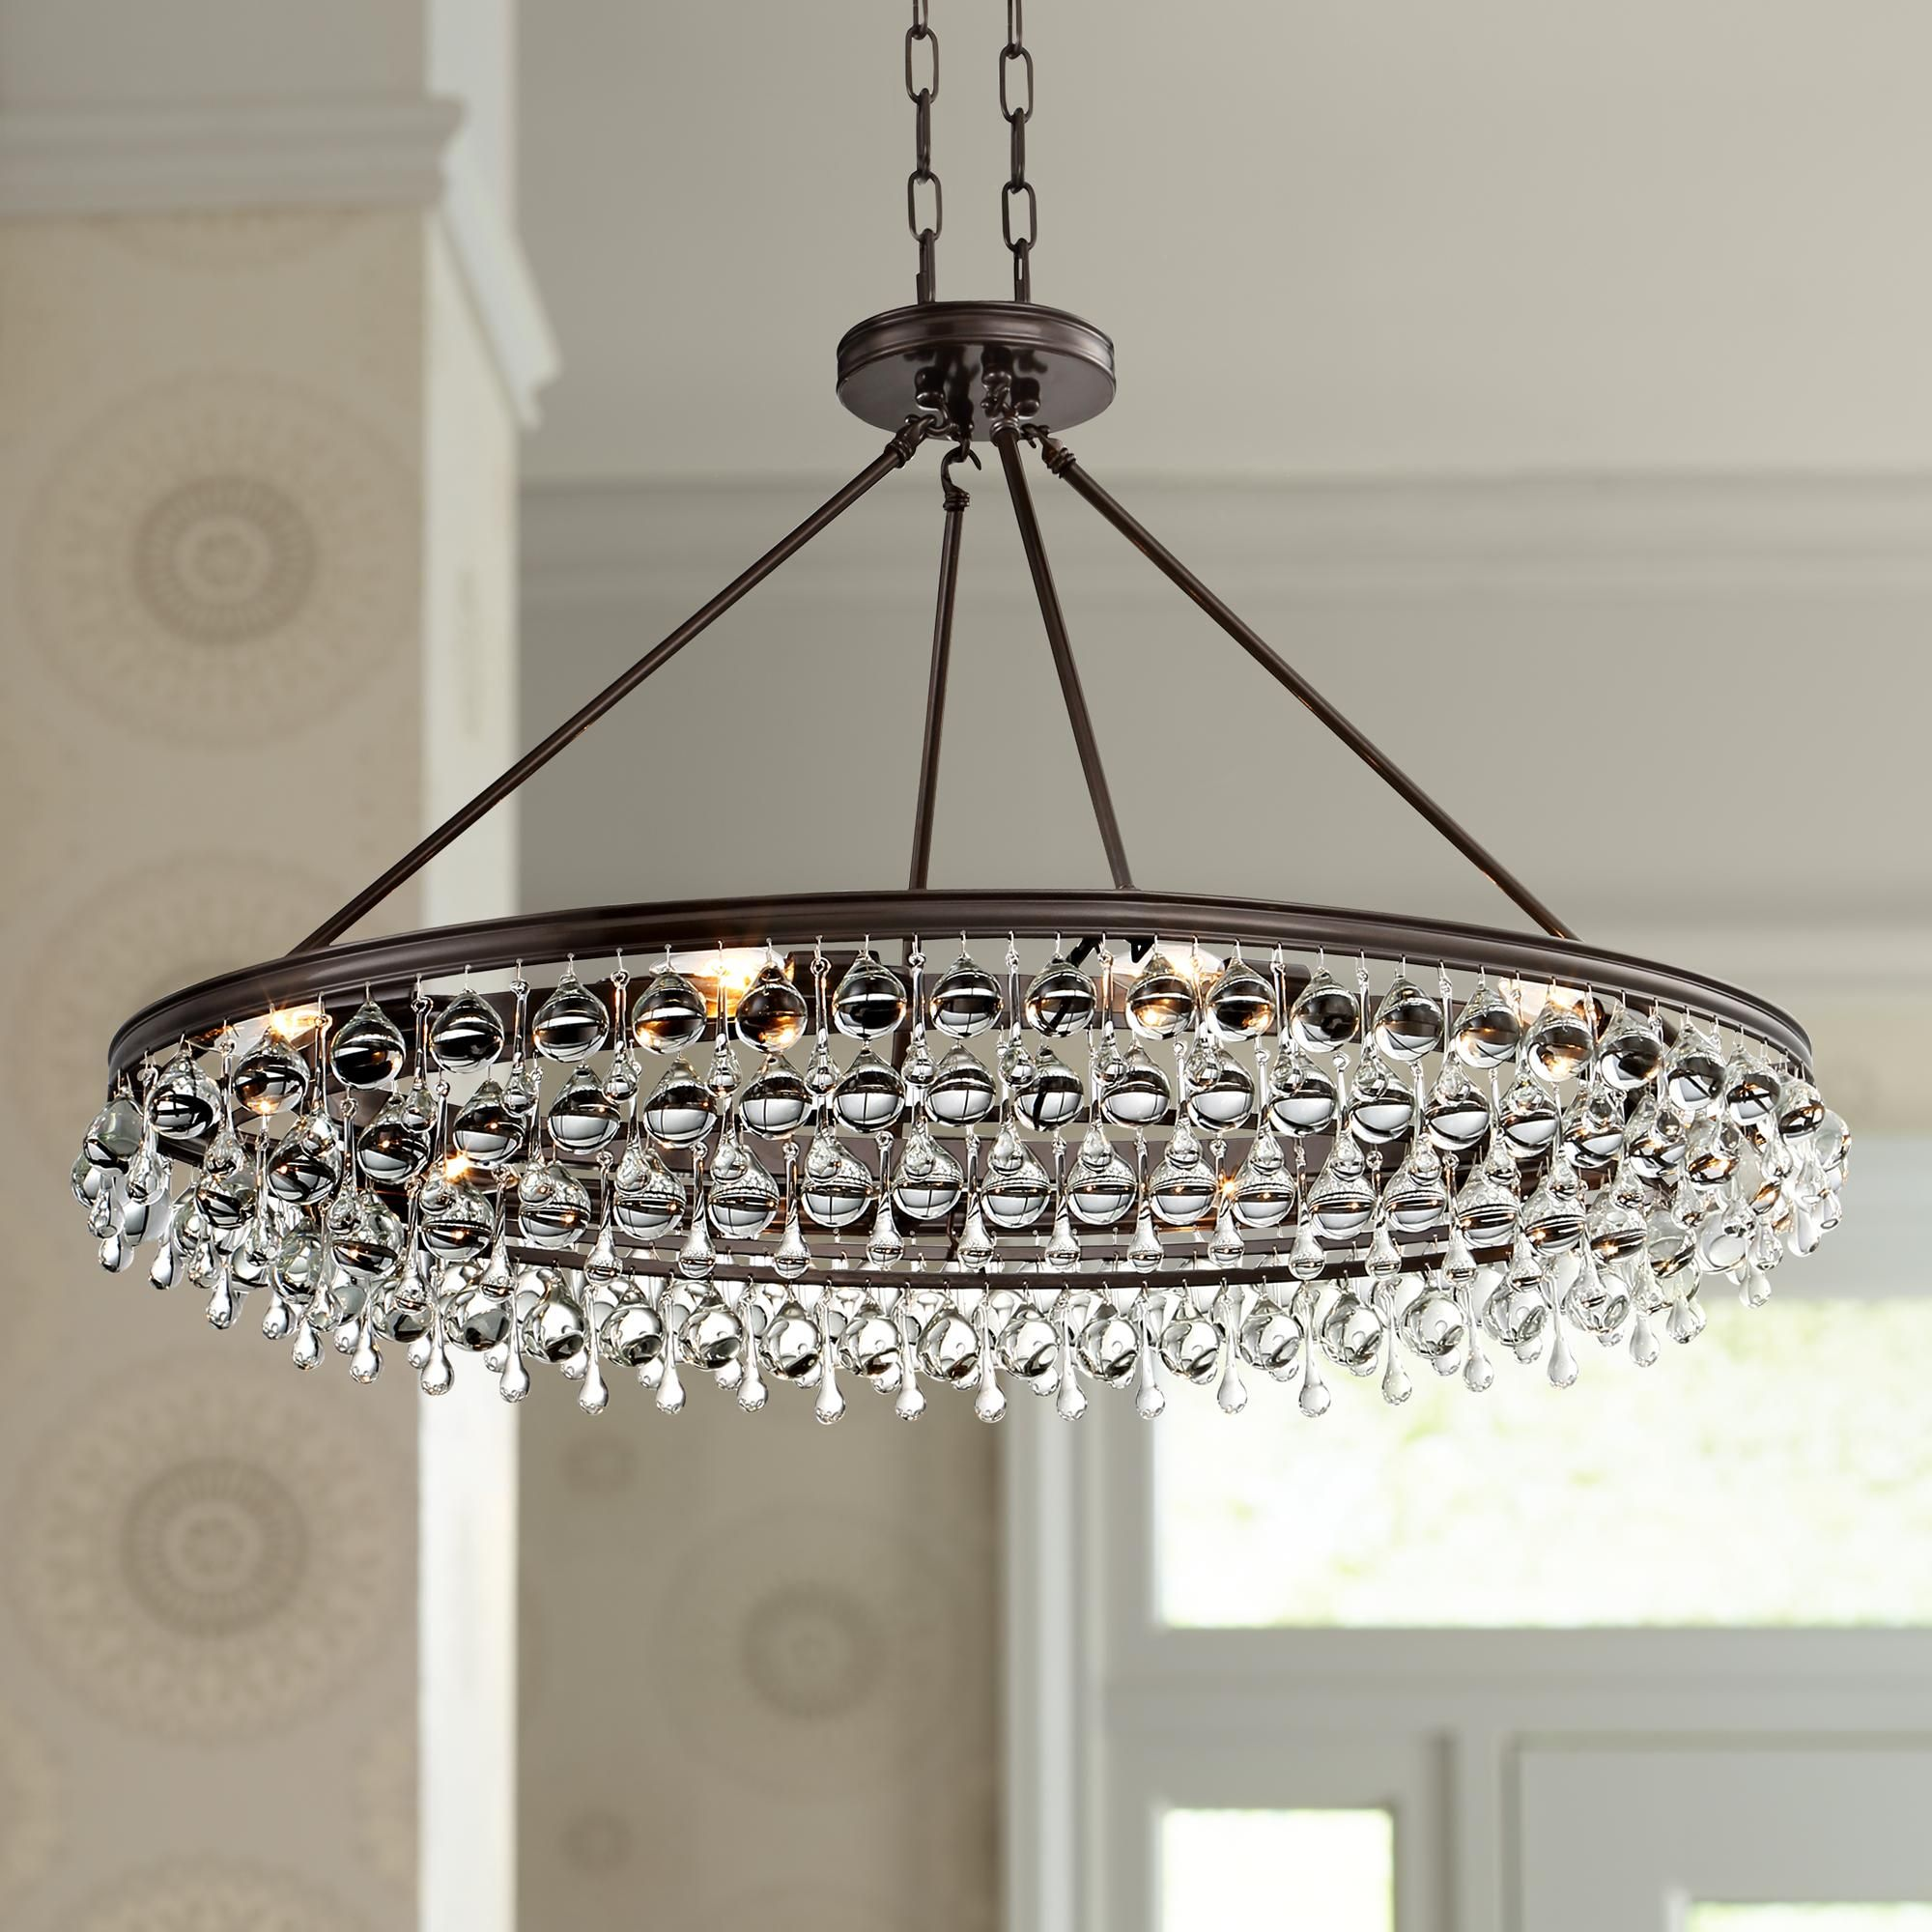 "Crystorama Calypso 40"" Wide Bronze Oval Island Chandelier"